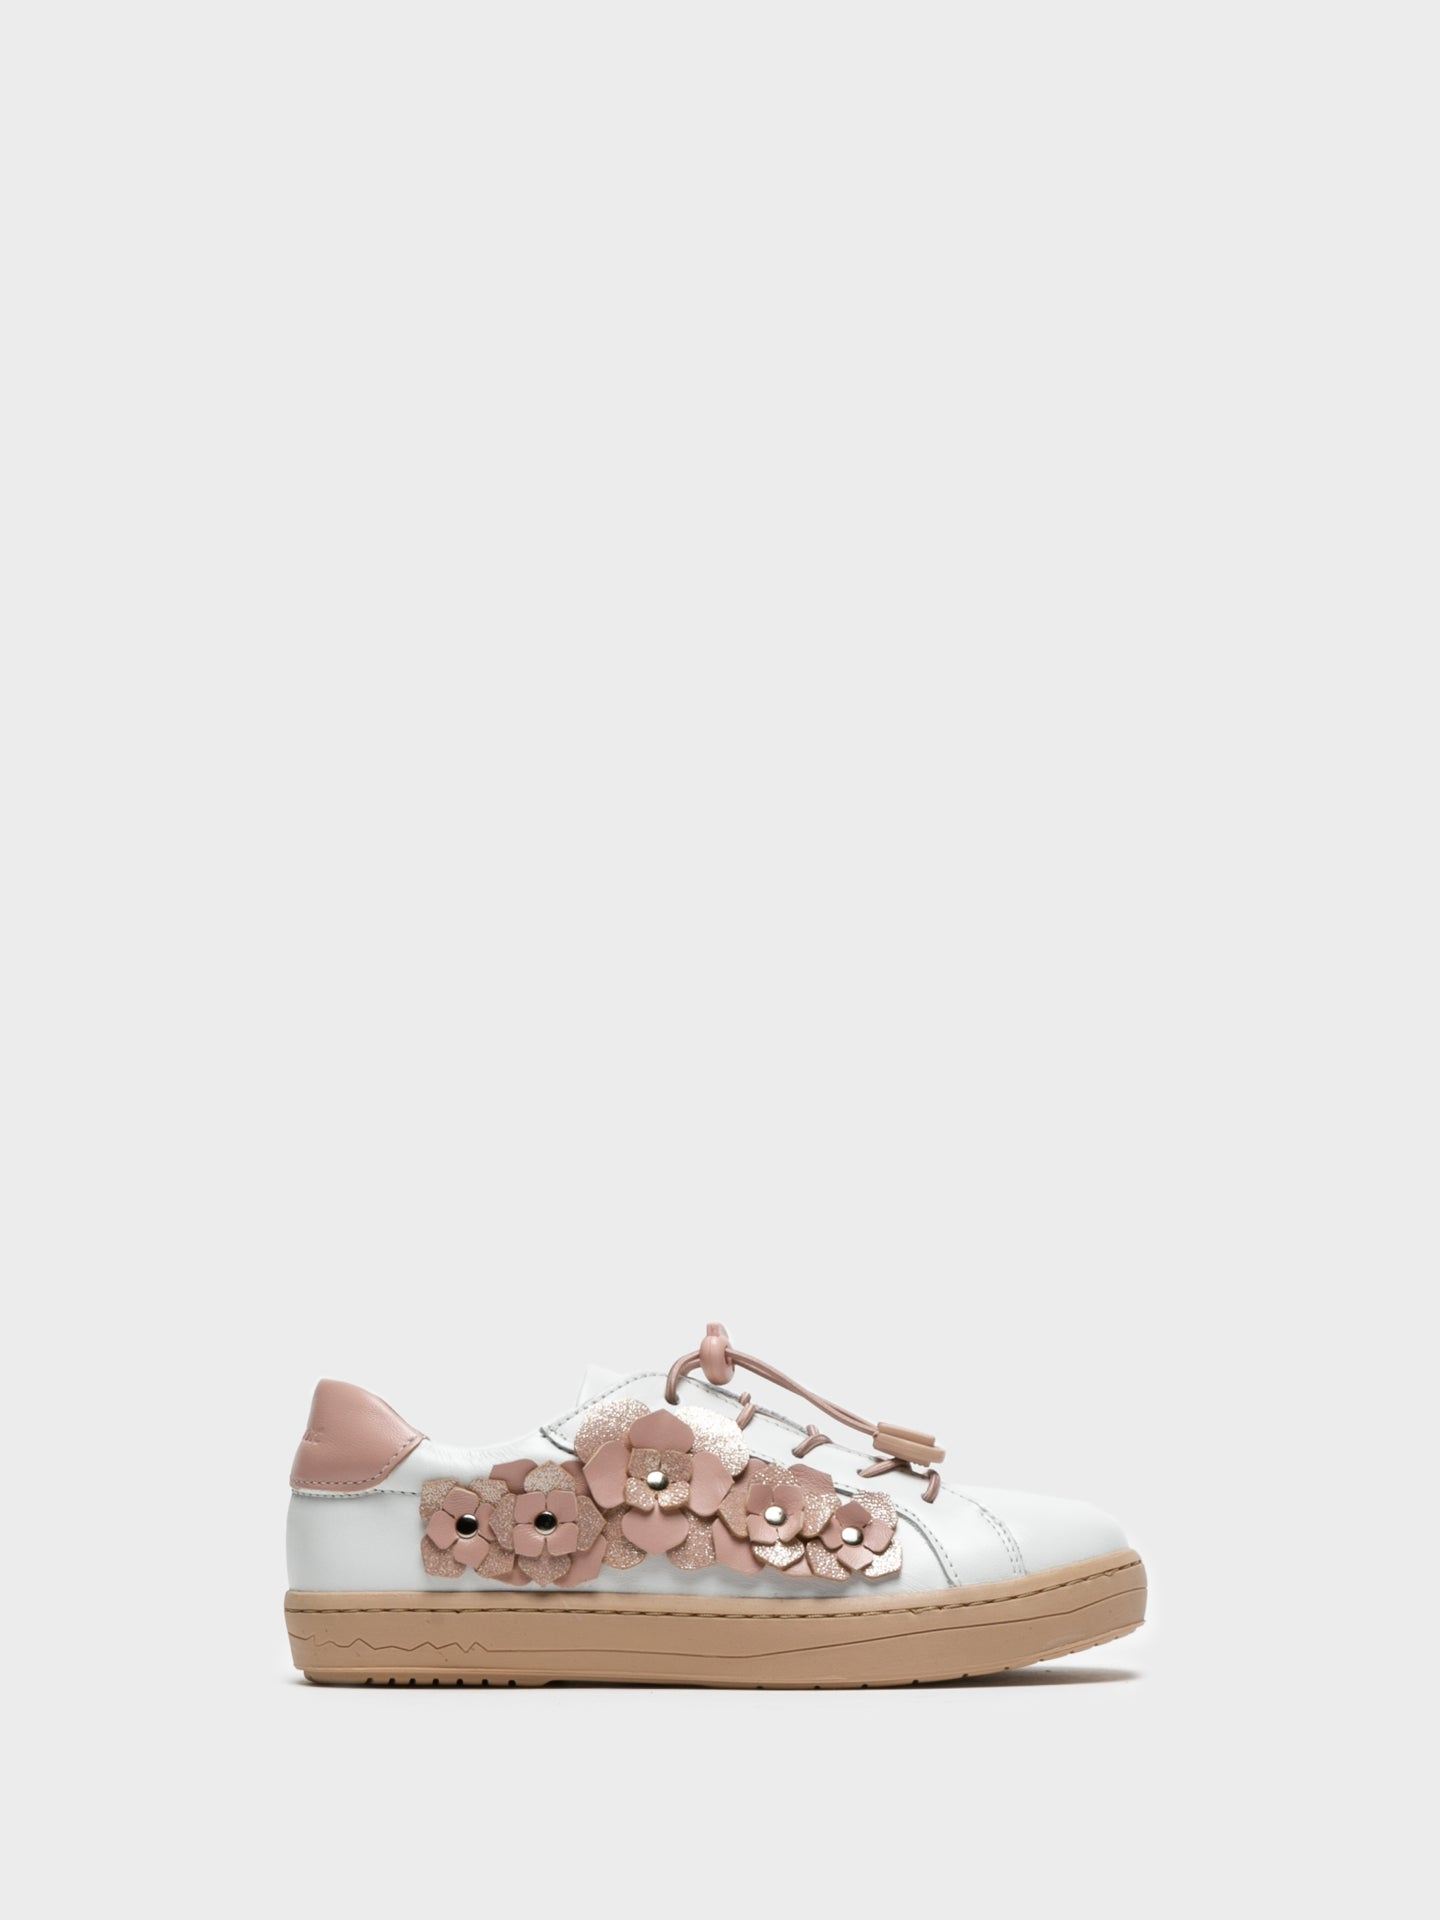 Camport Sneakers mit Applikationen in Camel Blanc